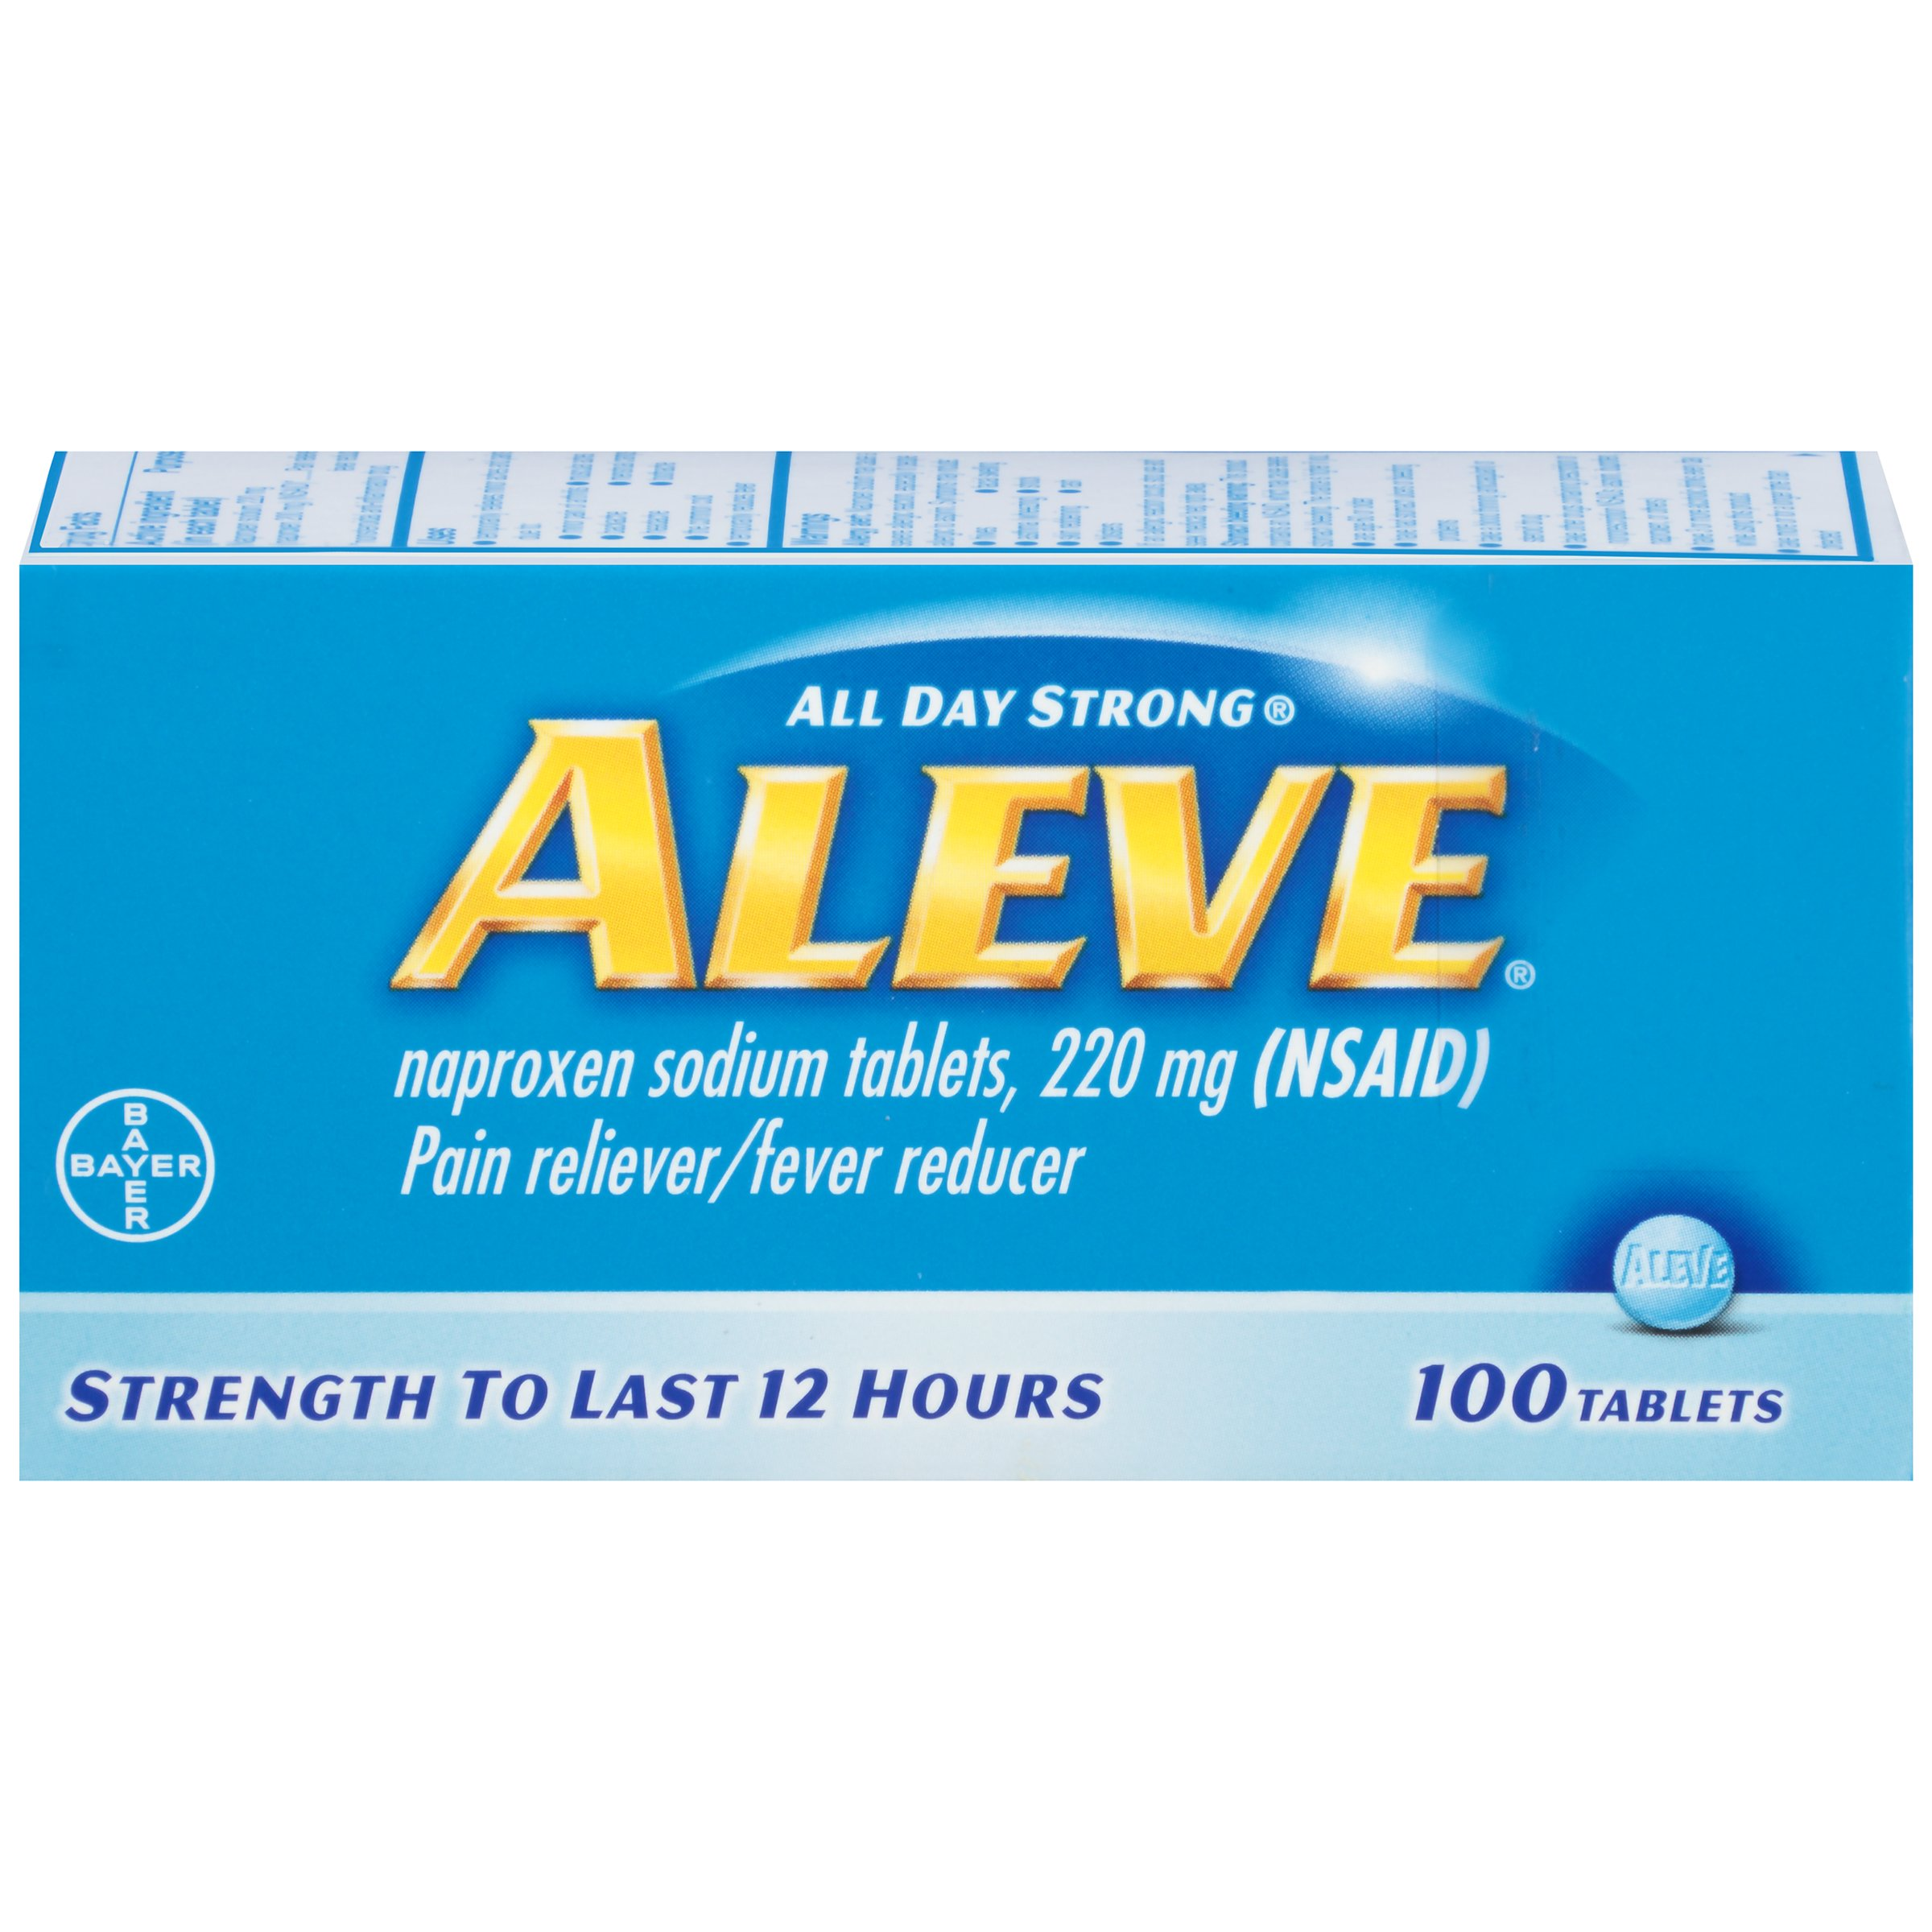 Aleve All Day Strong Pain Reliever, Fever Reducer Tablets, 100 Count